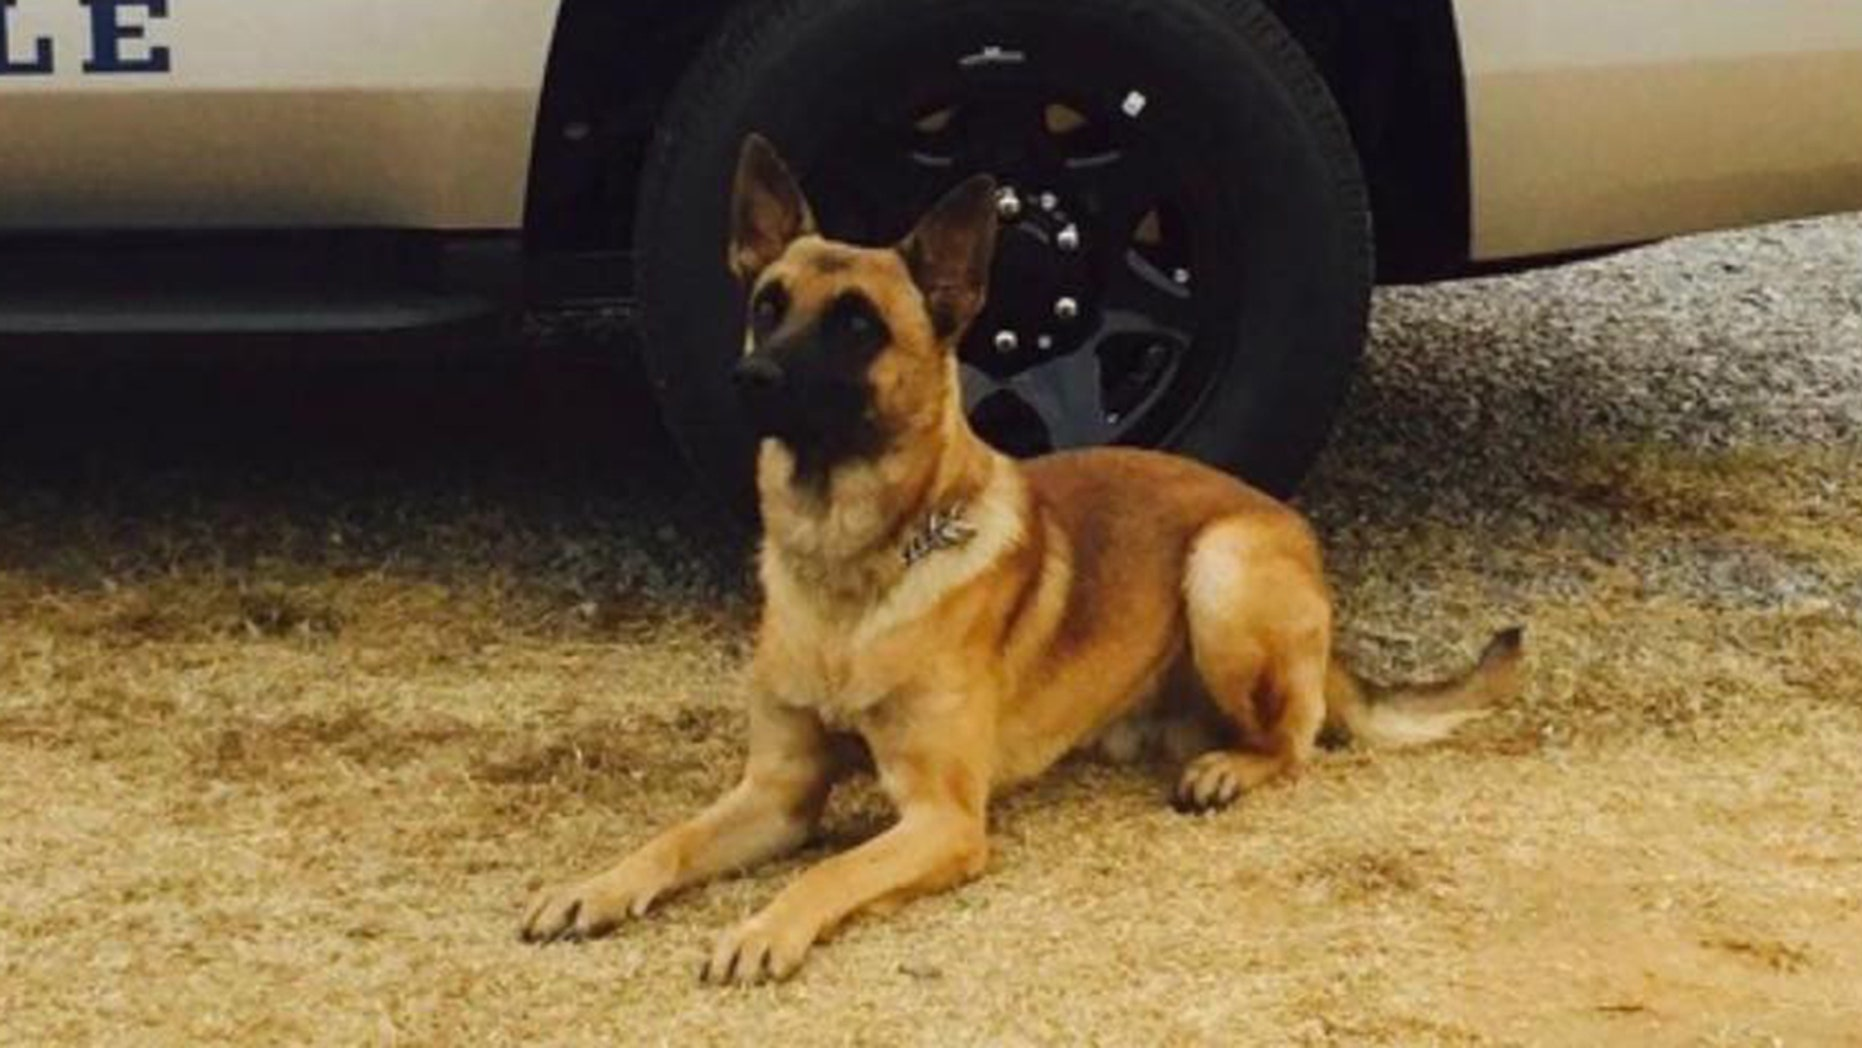 Westlake Legal Group Knoxville-PD-K9 Tennessee K-9 bites, brings down carjacking suspect, cops say Frank Miles fox-news/us/us-regions/southeast/tennessee fox-news/us/personal-freedoms/proud-american fox-news/us/crime/robbery-theft fox-news/us/crime/police-and-law-enforcement fox news fnc/us fnc article 984c1acb-dfc3-5a69-8c09-44e798716088